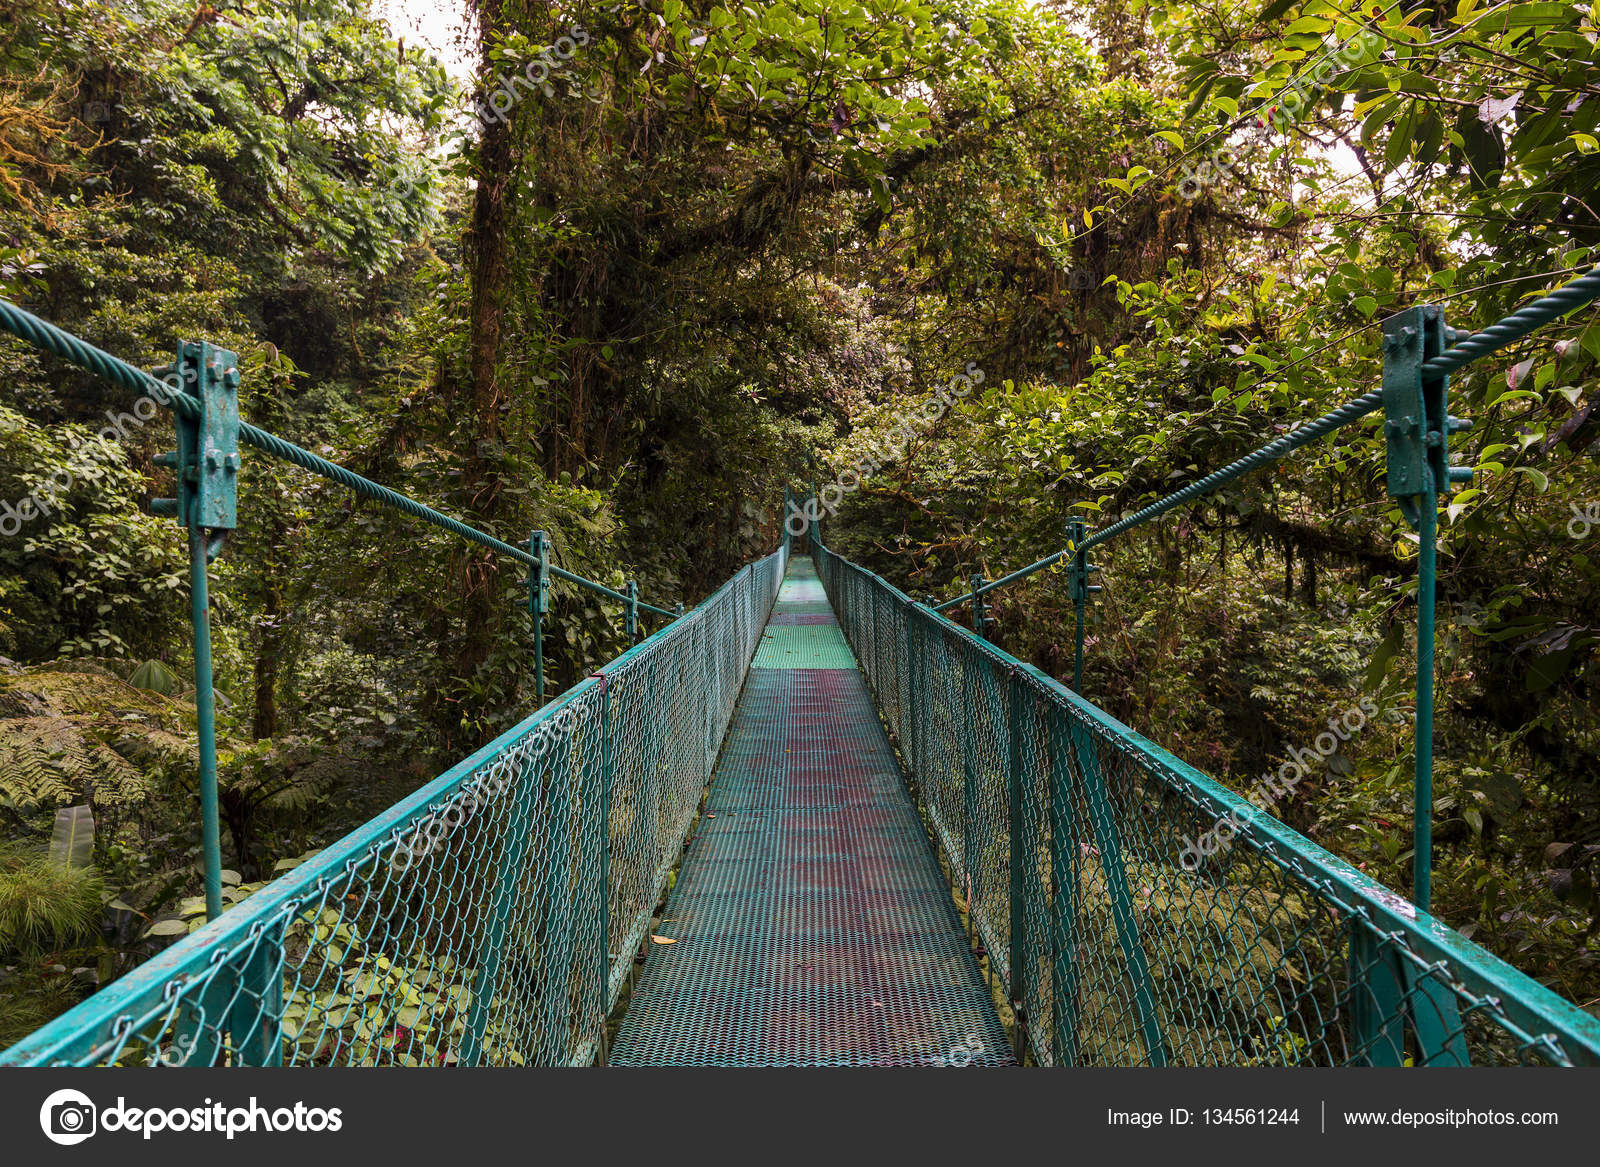 Suspended bridge over the canopy of the trees in Monteverde Costa Rica u2014 Stock Photo & Suspended bridge over the canopy of the trees in Monteverde Costa ...